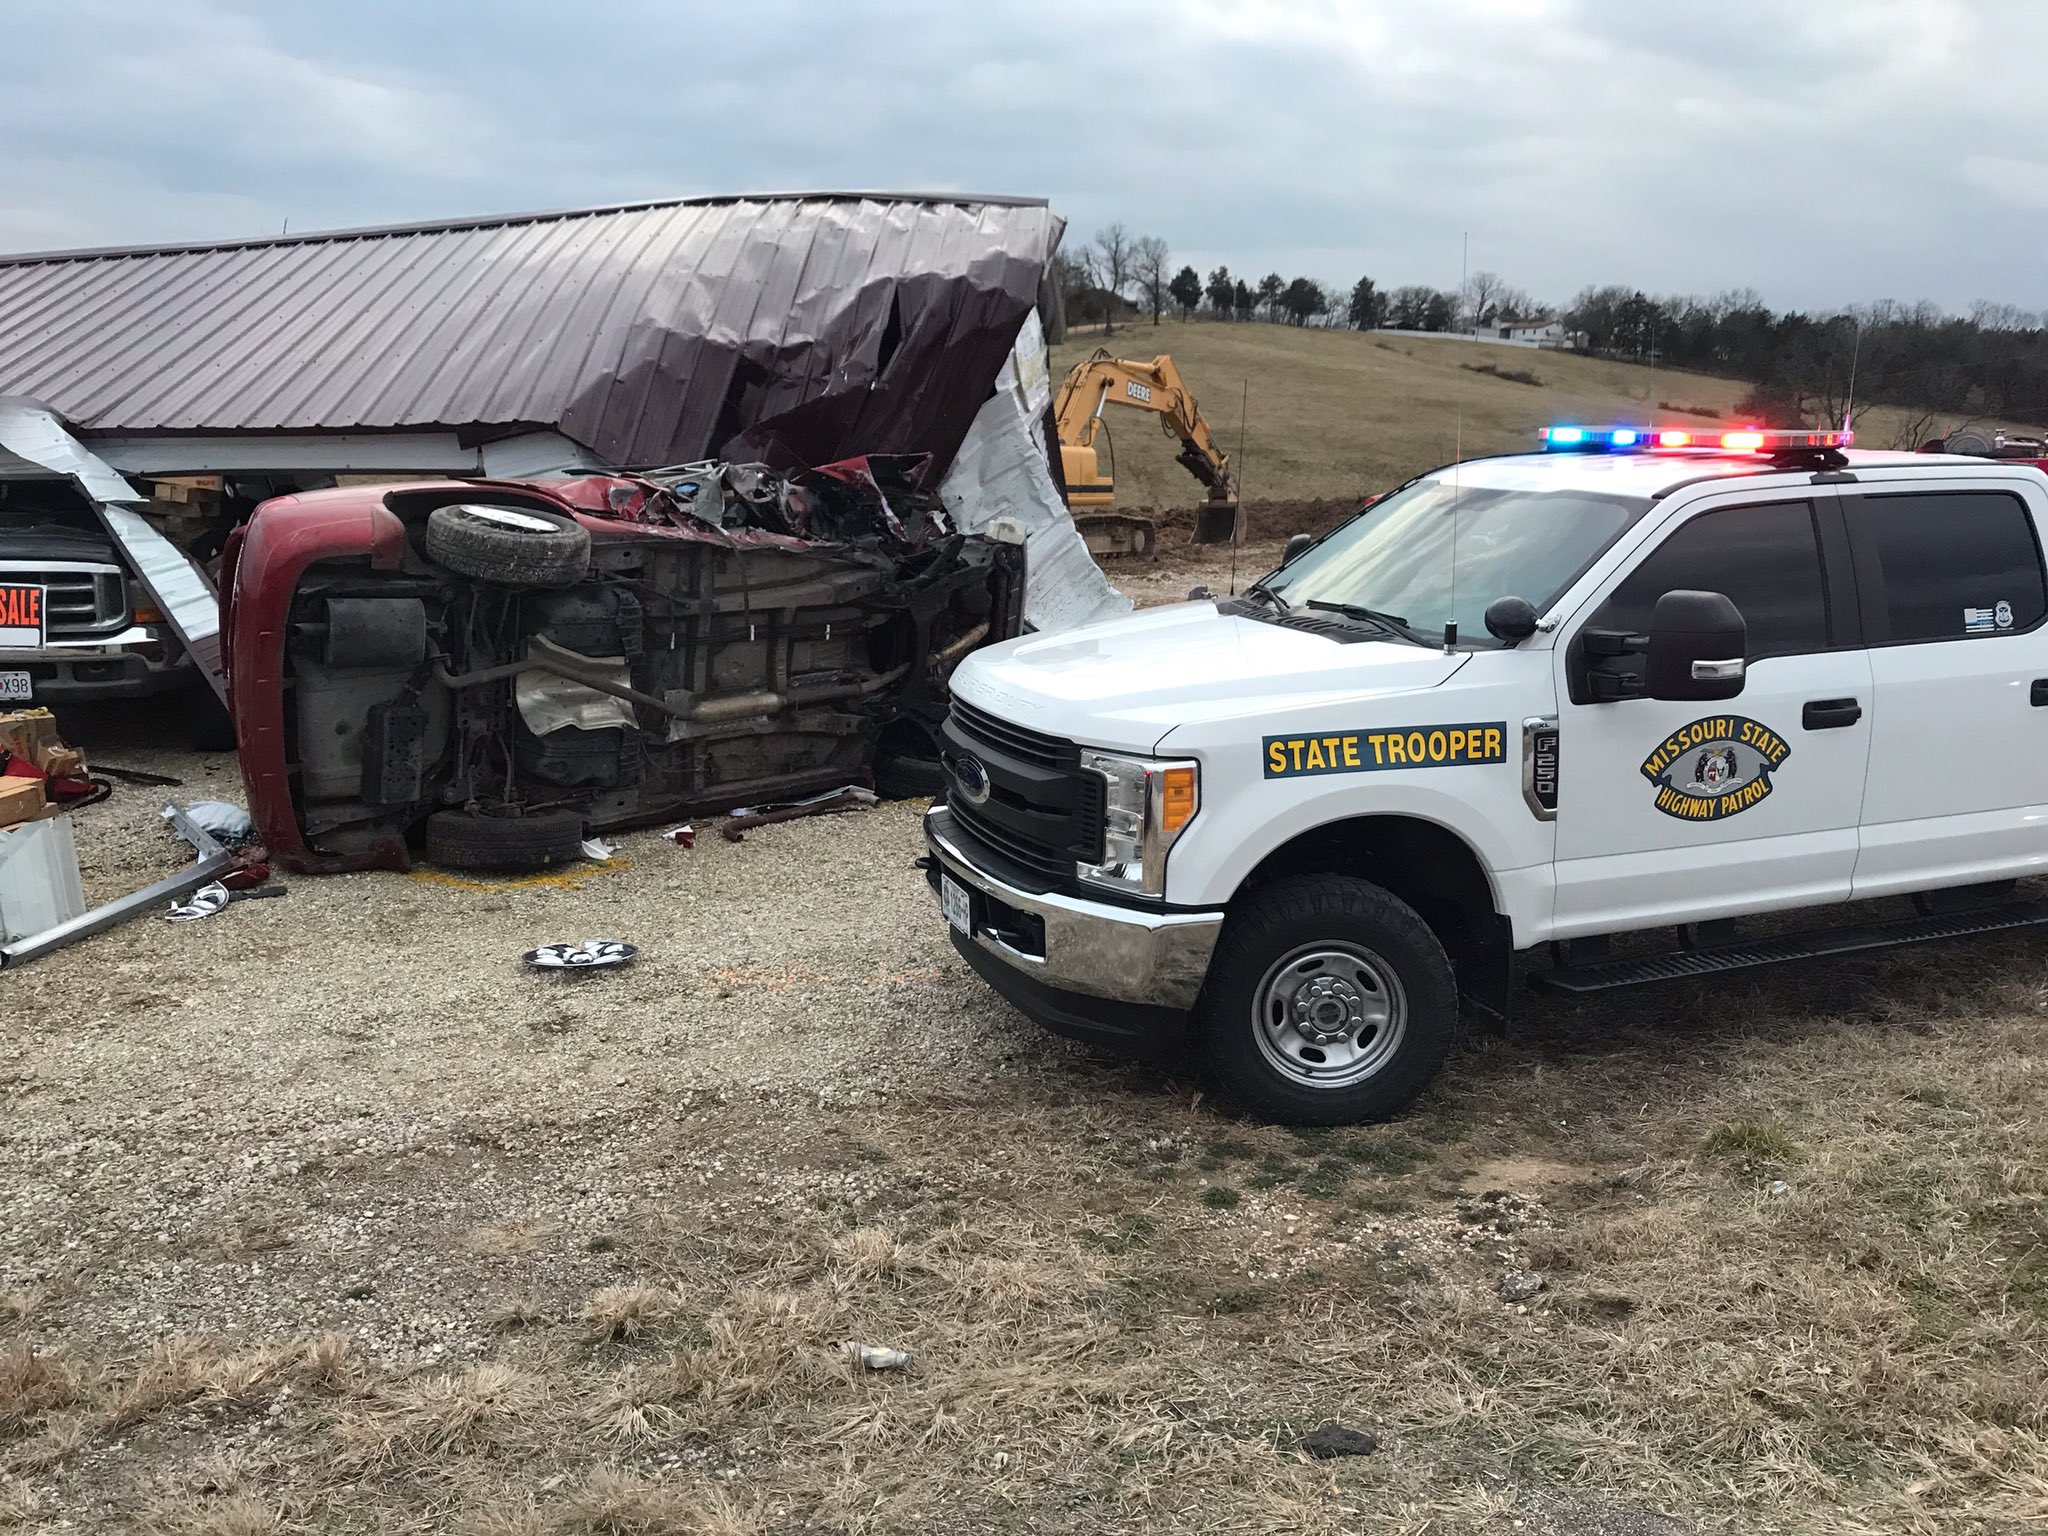 One killed after car hit building in Osage County